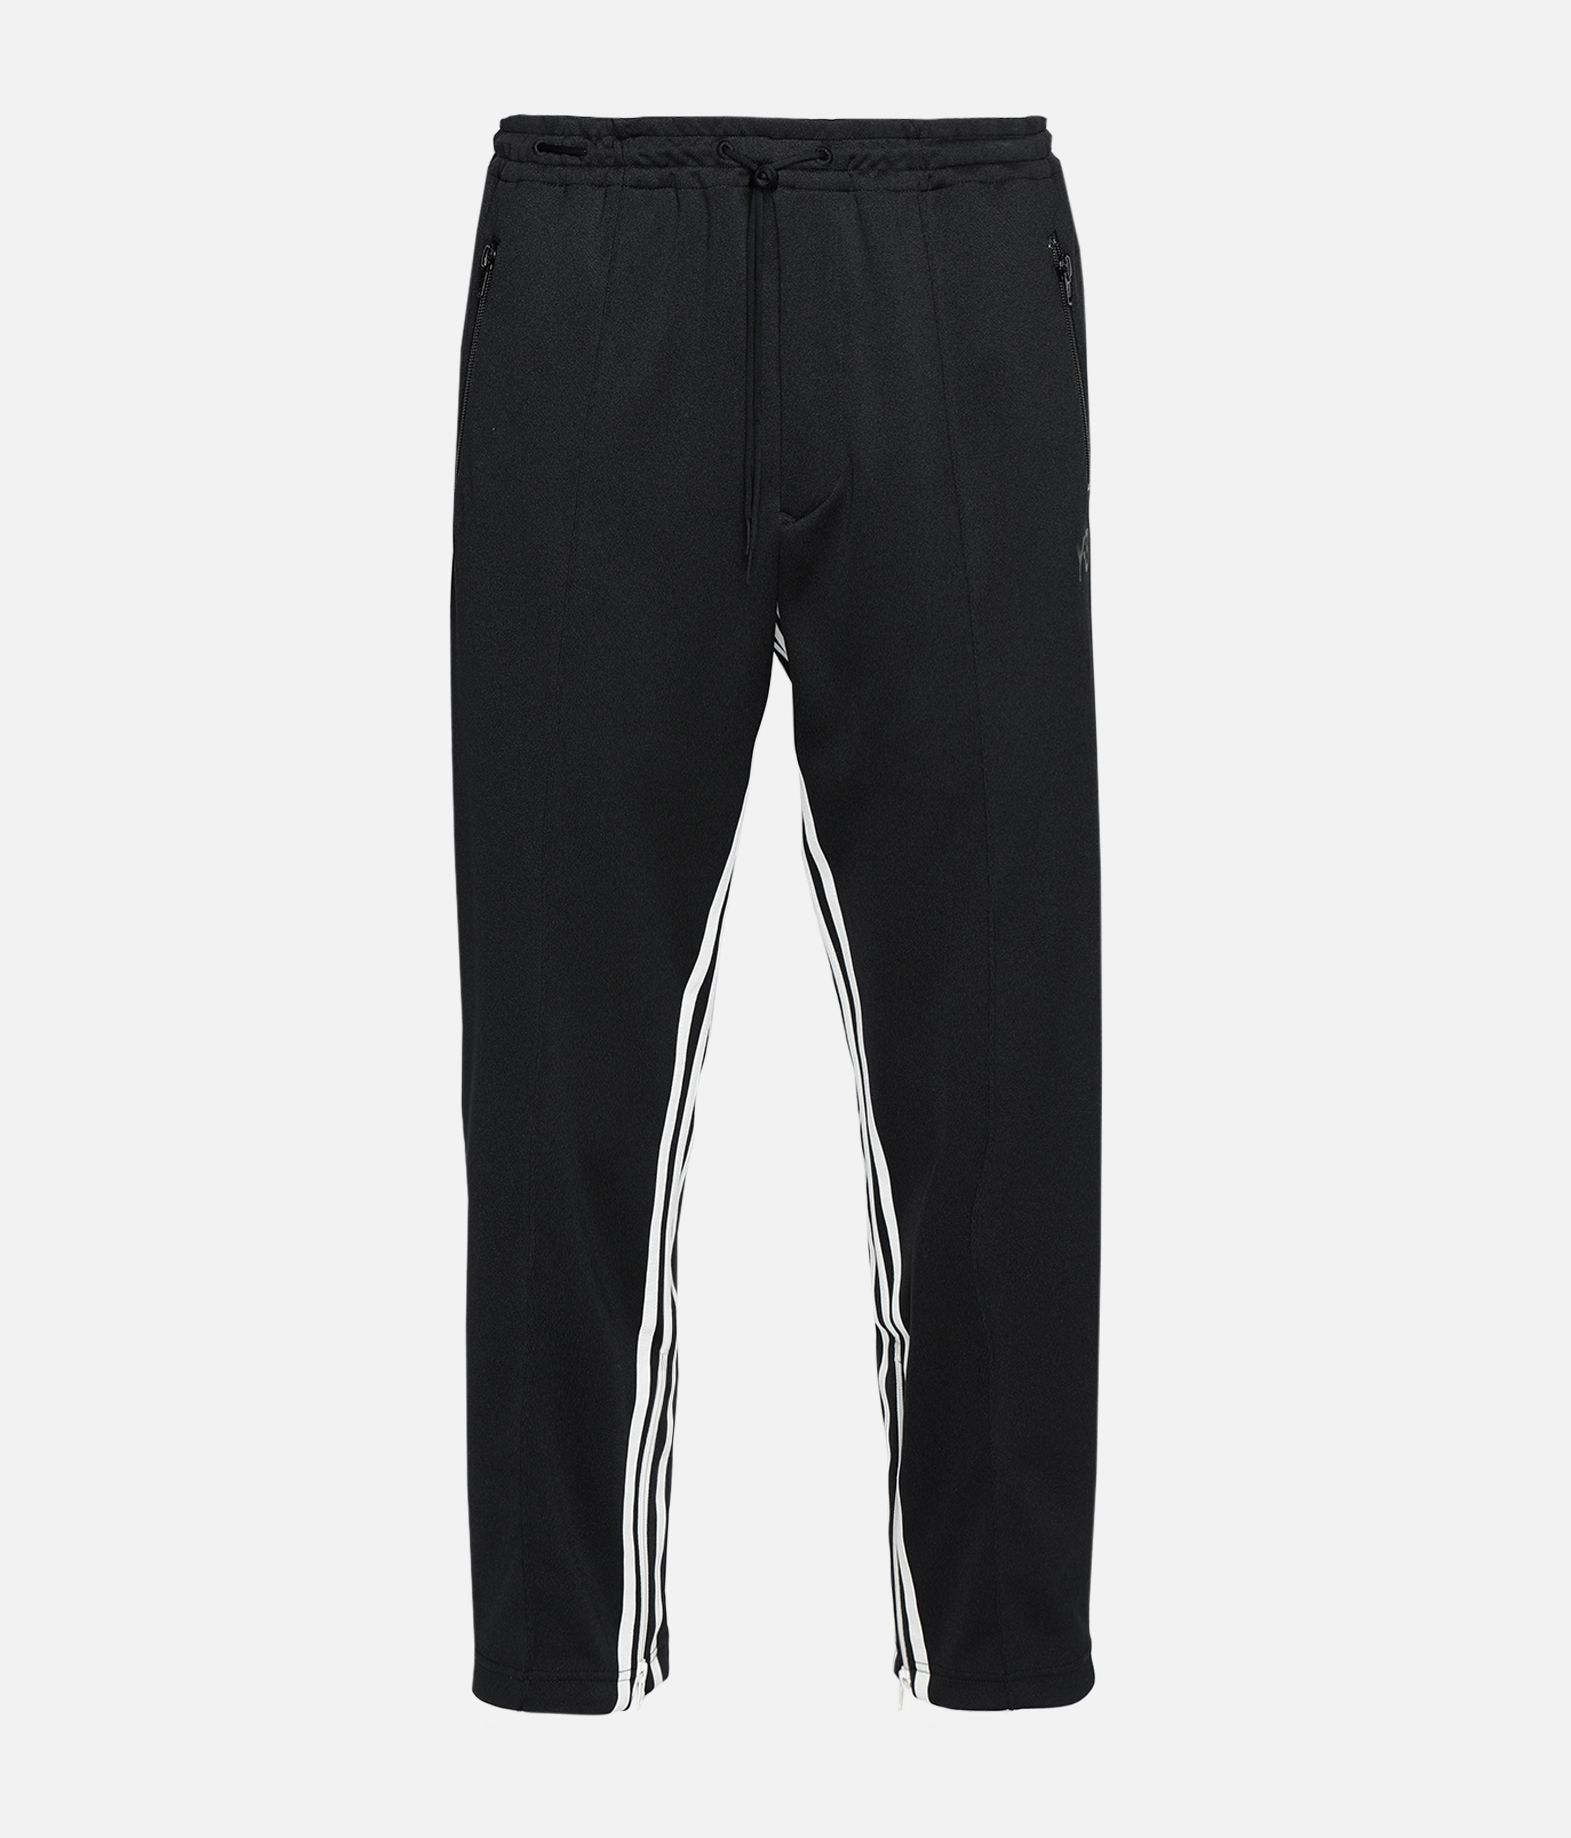 Y-3 Y-3 3-Stripes Cropped Track Pants Tracksuit bottoms Man f